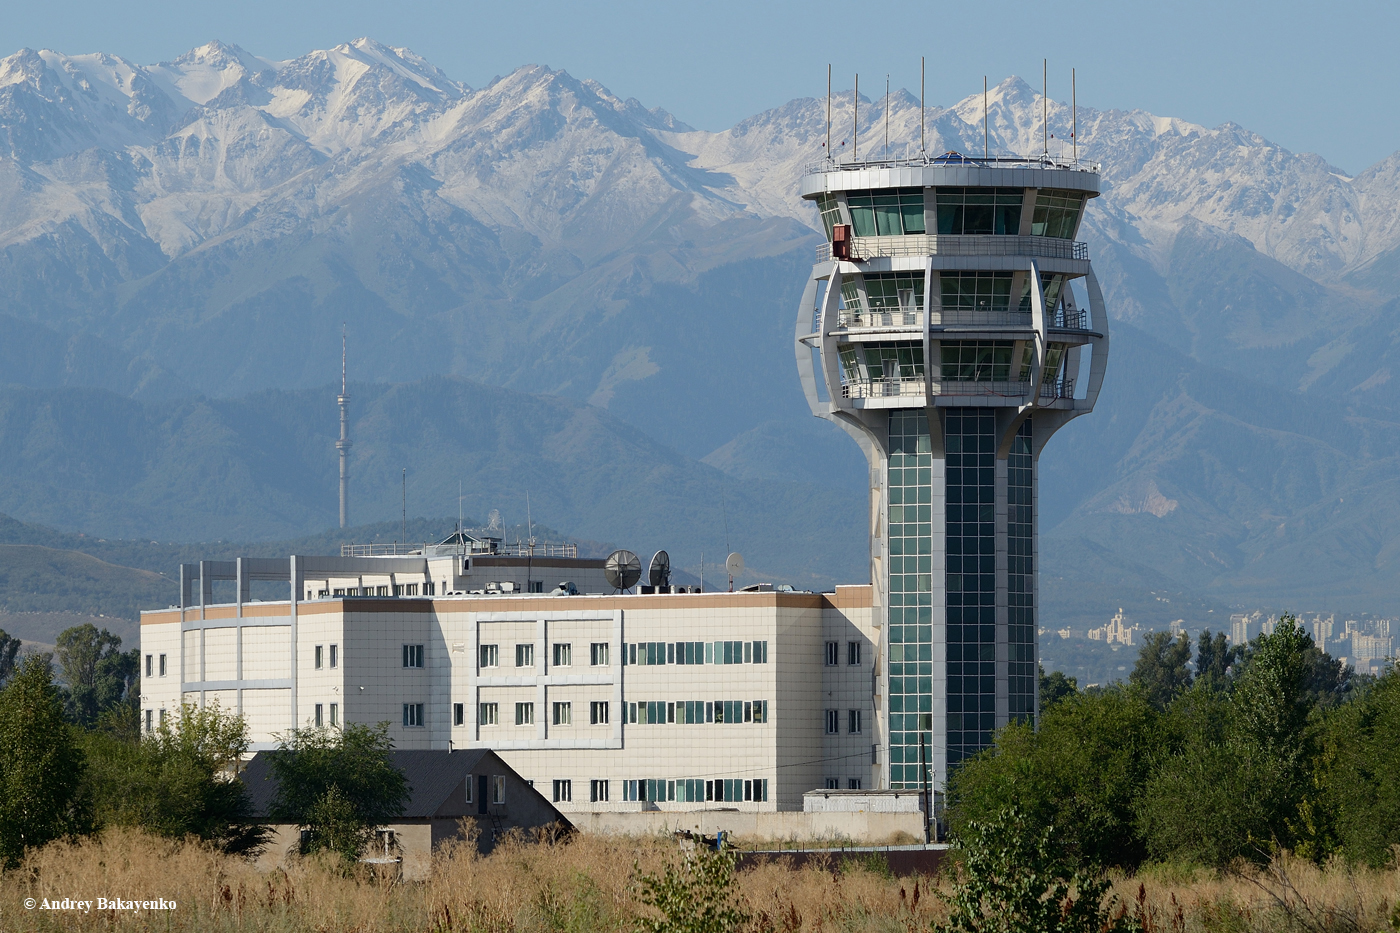 The air traffic control tower at the Almaty airport. August 2019.